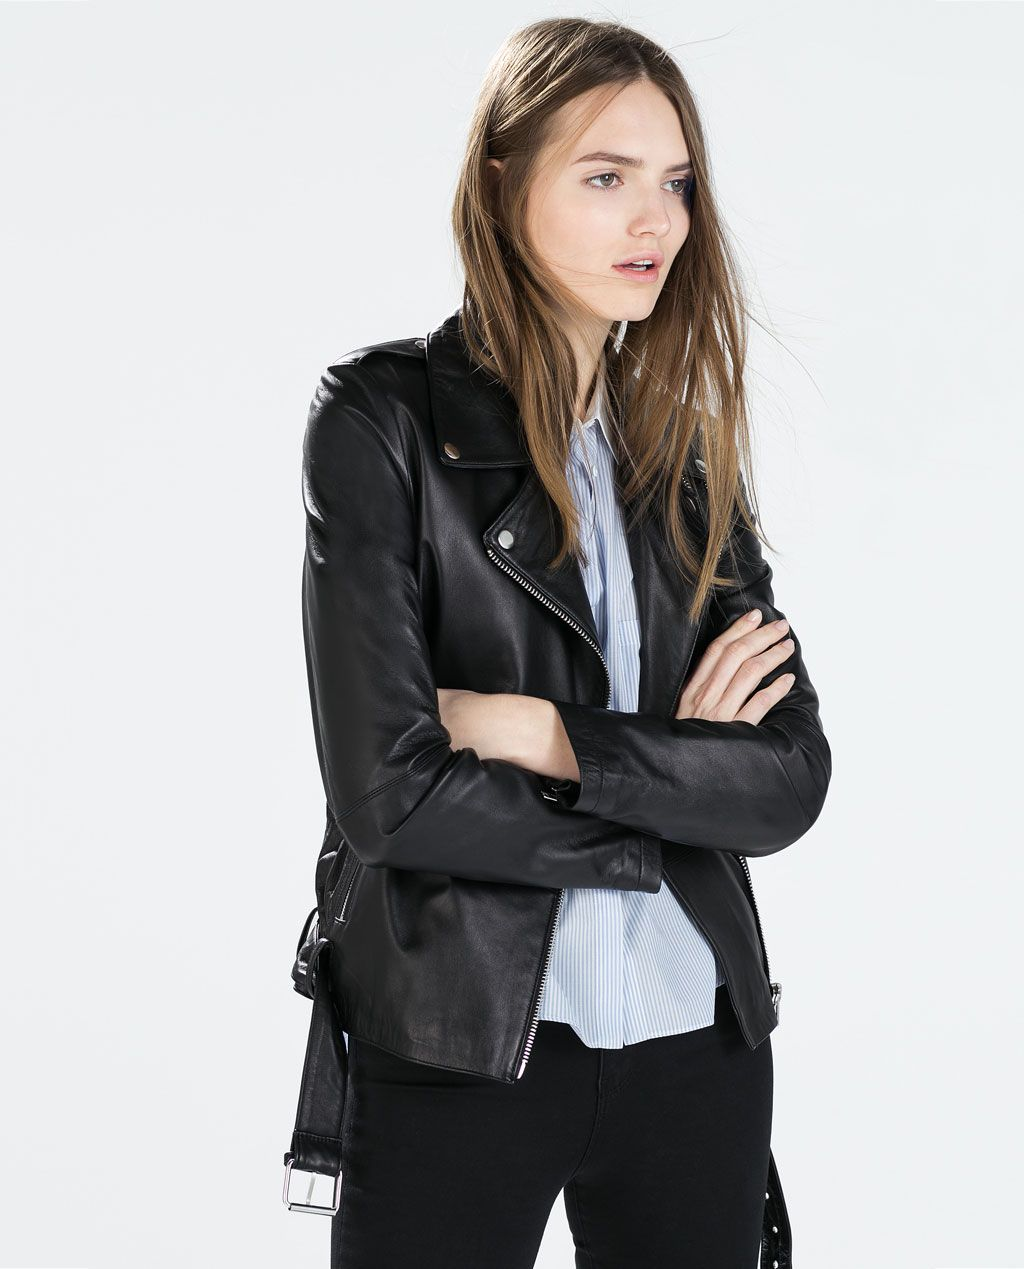 BIKER JACKET + BUTTON DOWN Leather biker jacket, Zara